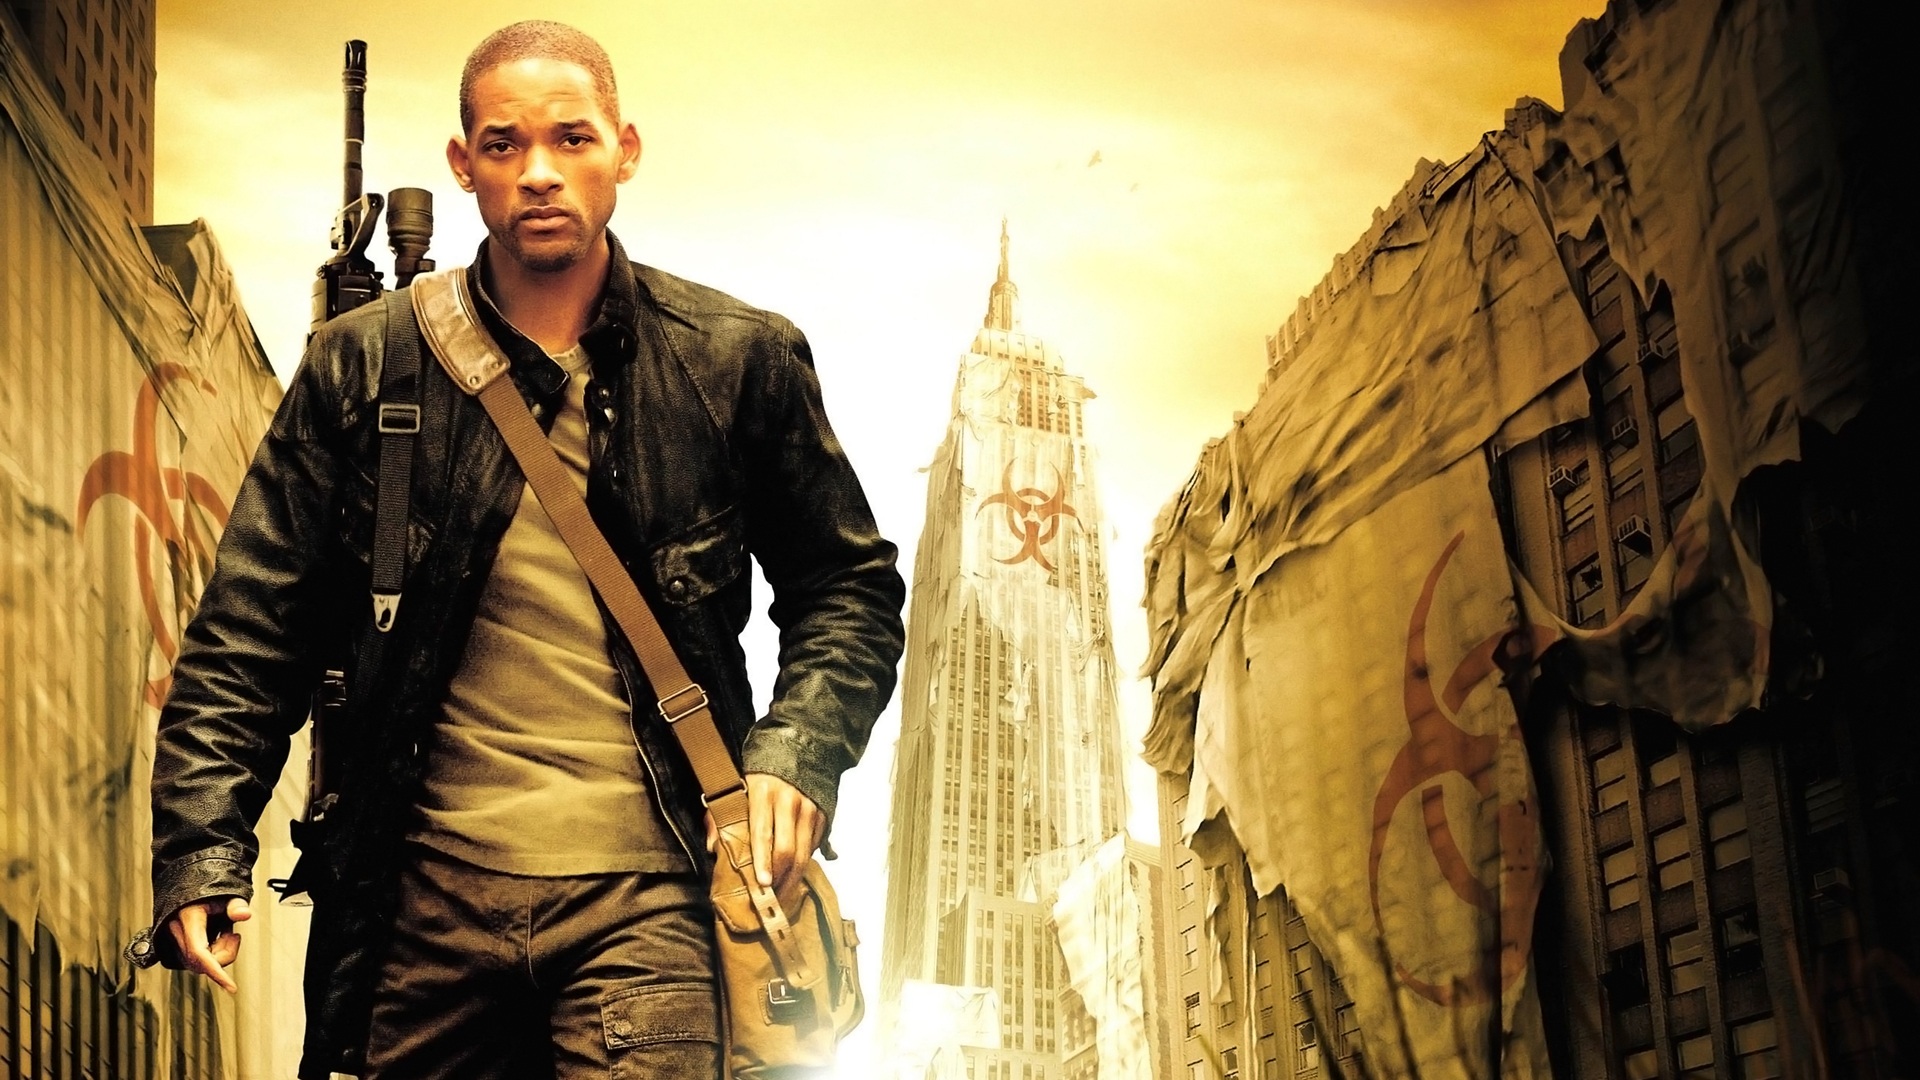 HQ I Am Legend Wallpaper   HQ Wallpapers 1920x1080